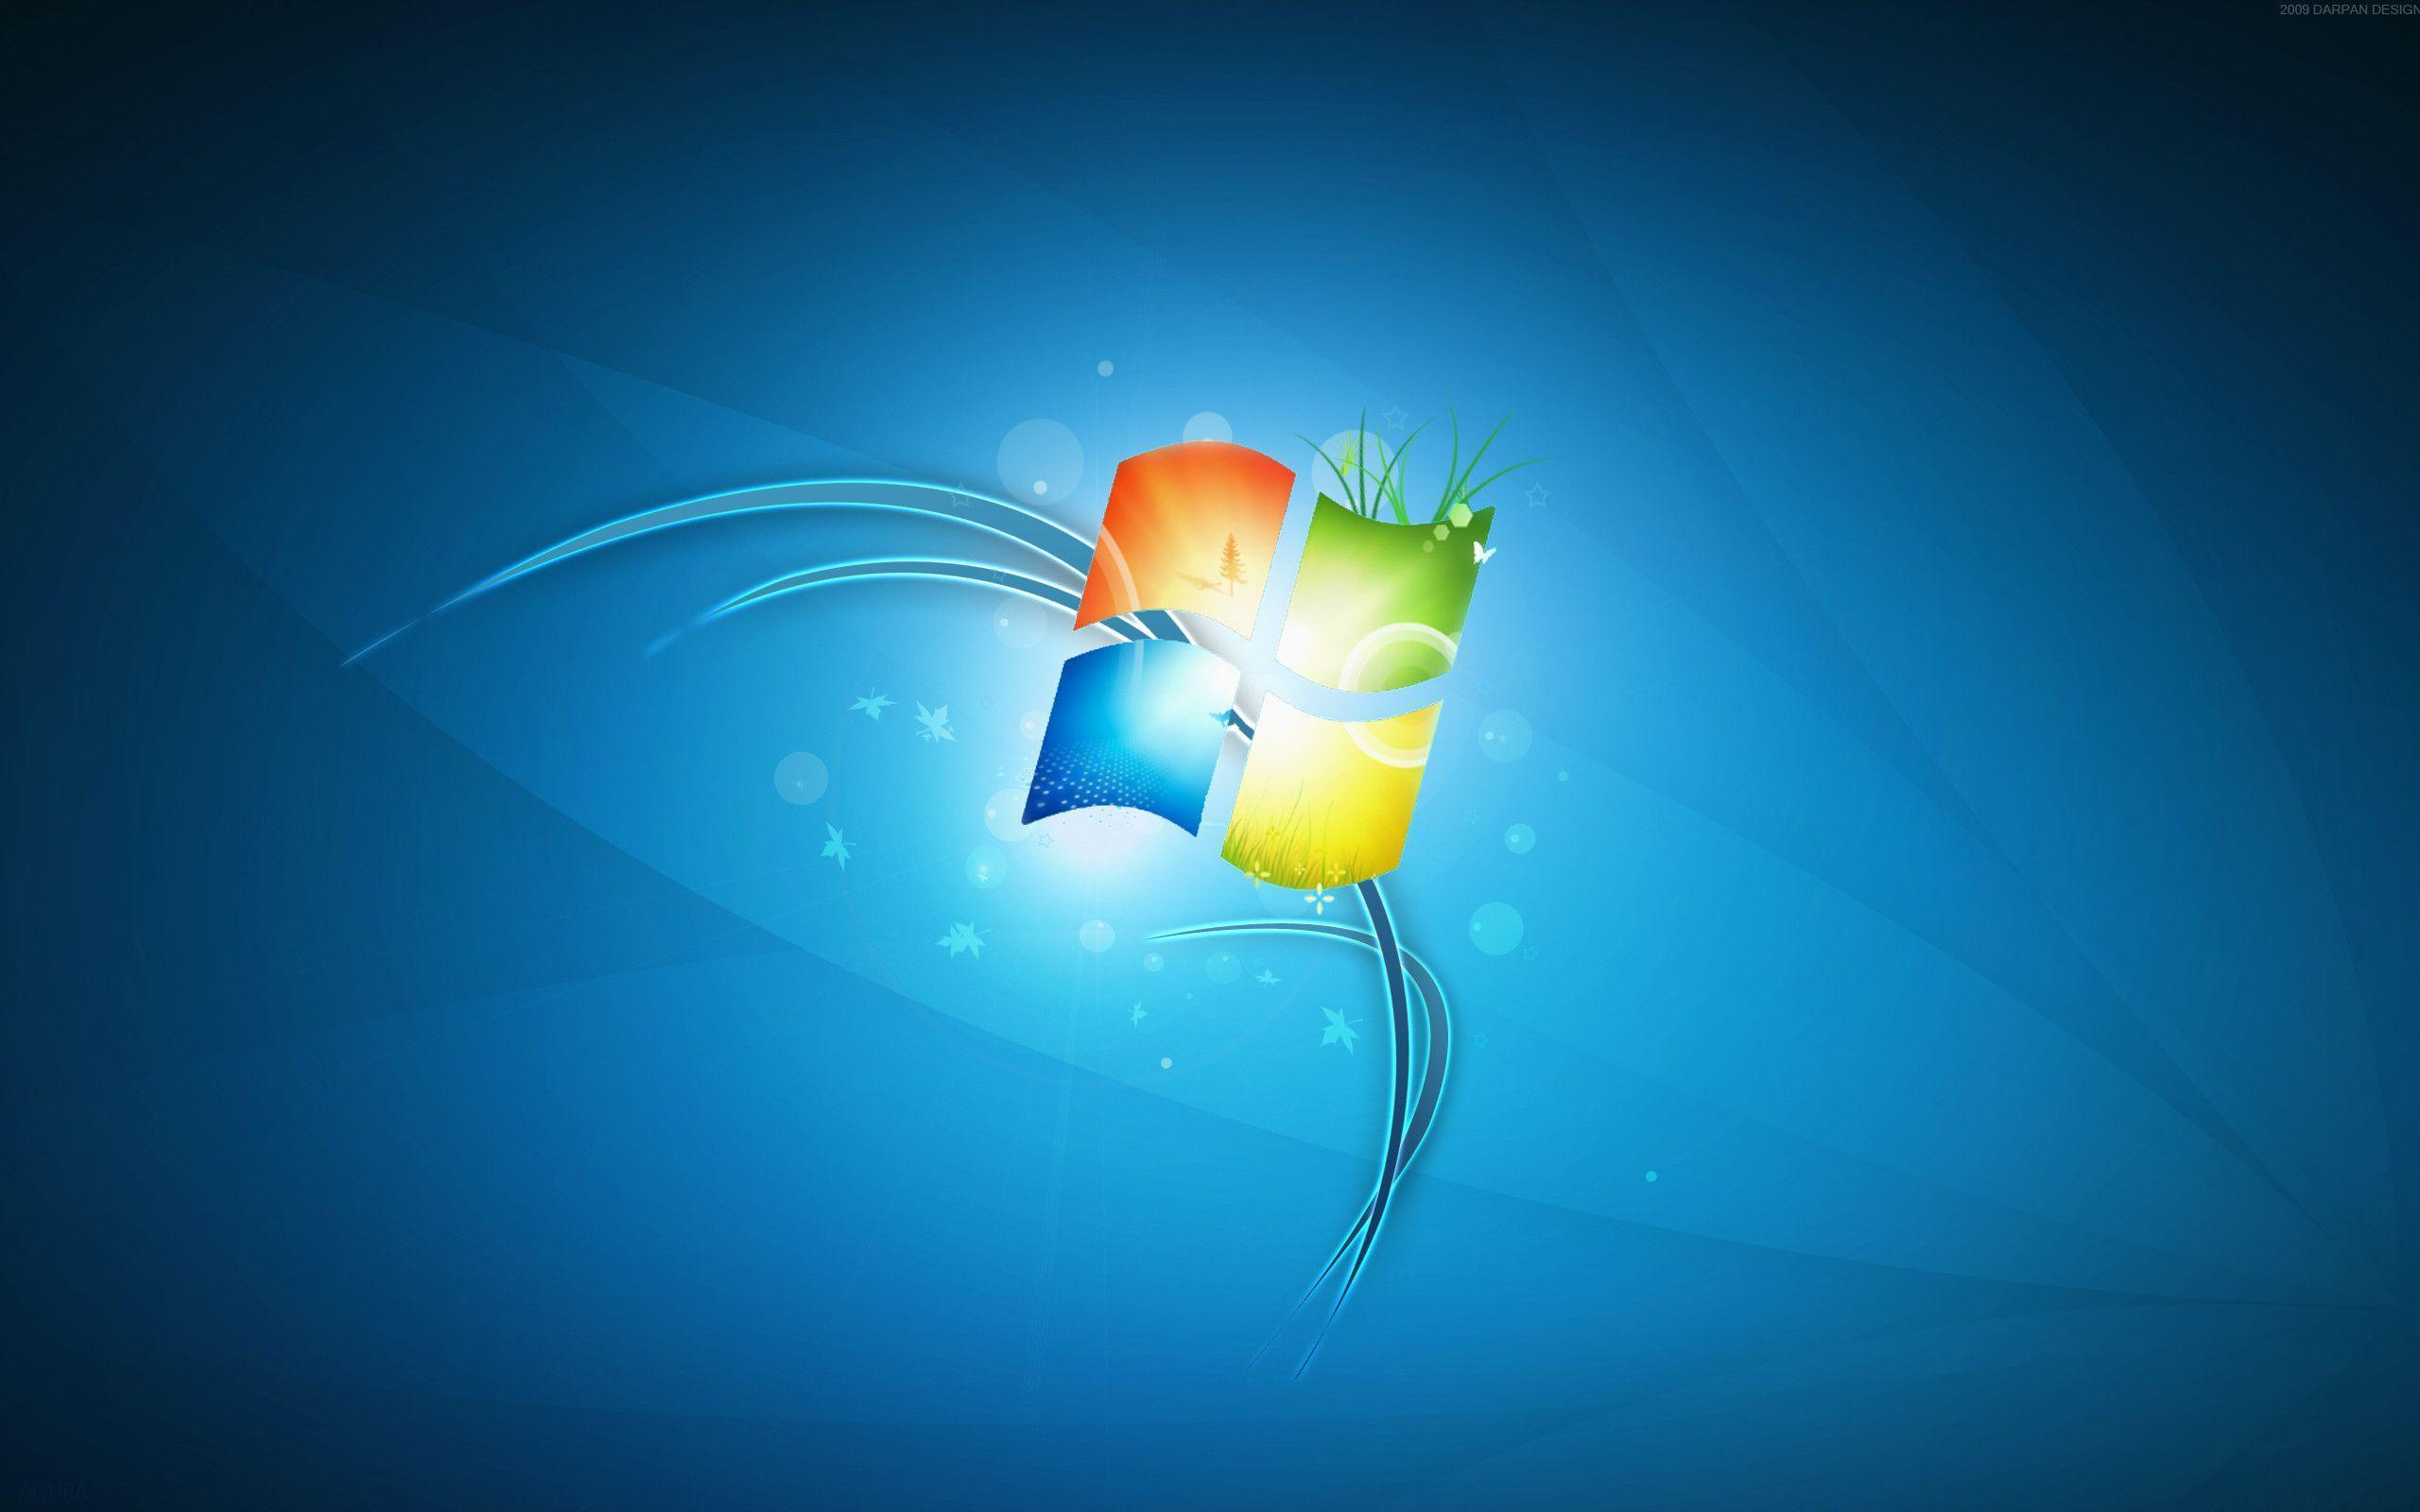 Windows 7 Ultimate Wallpapers - Full HD wallpaper search